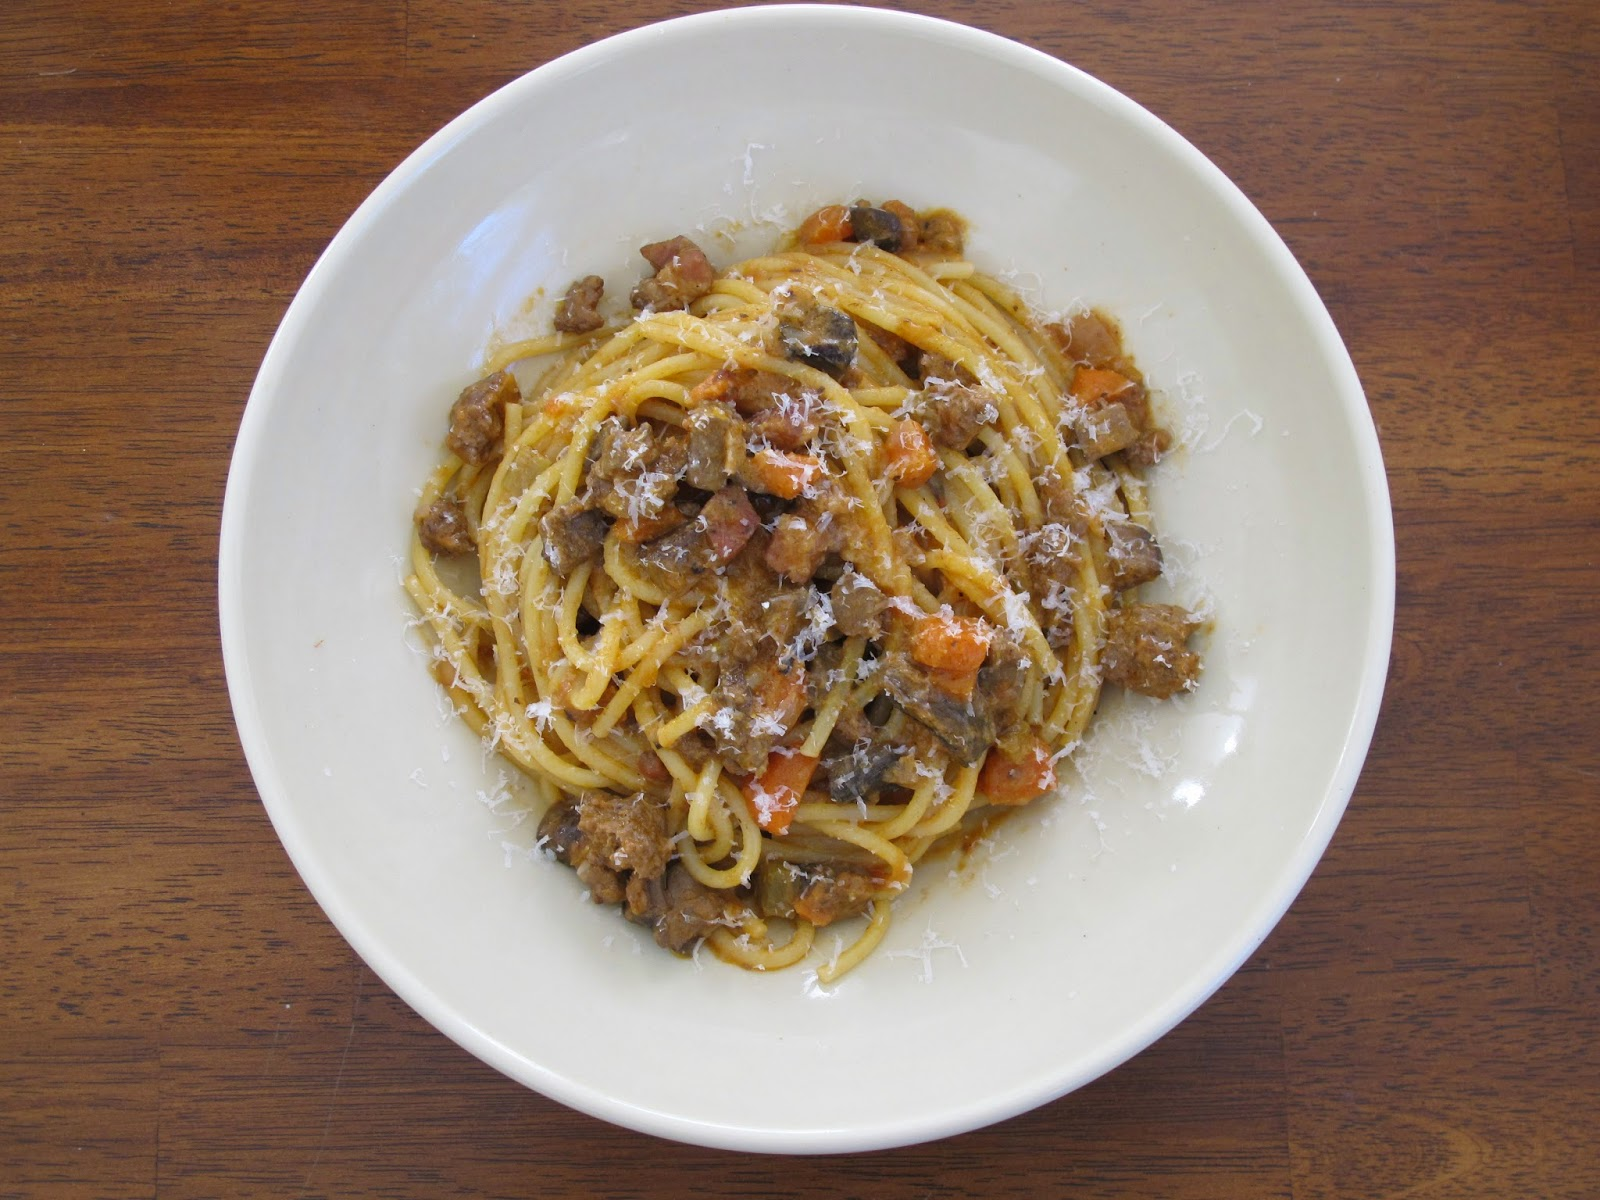 Spaghetti with Lamb Bolognese Sauce